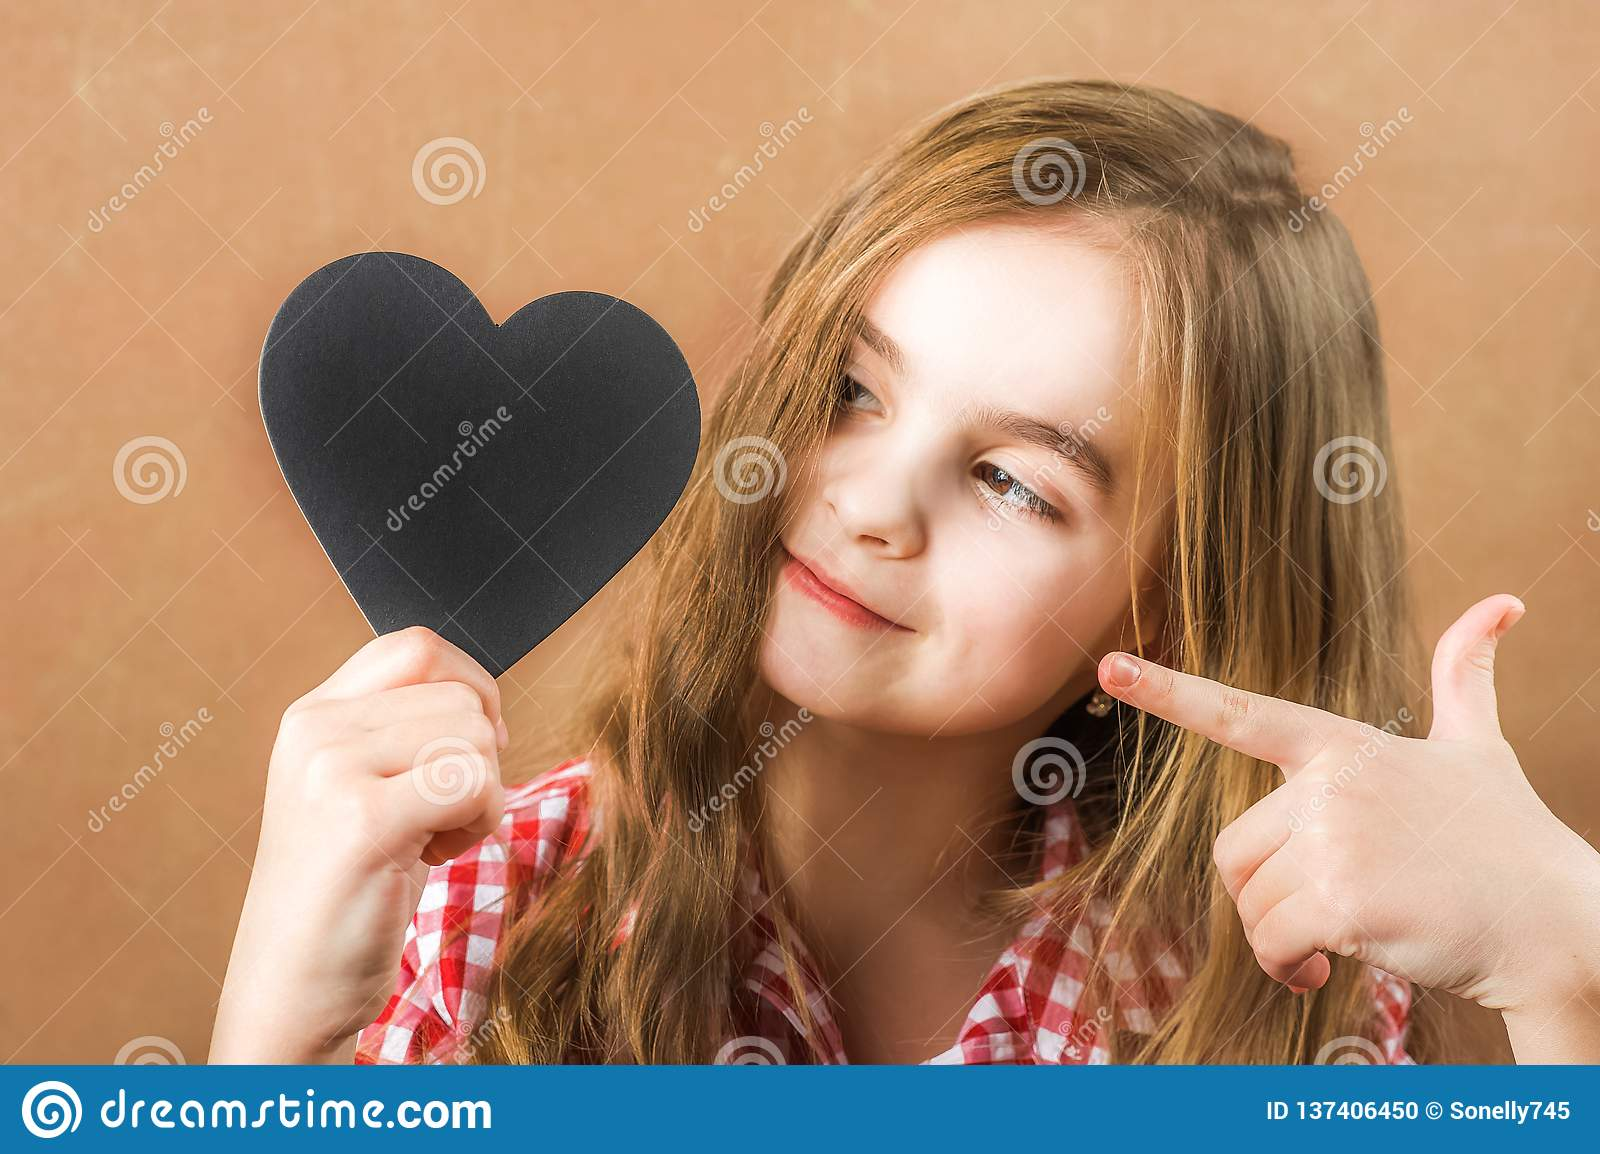 Girl and black slate heart. The girl builds a physiognomy, grimaces and a heart for an inscription. Valentine`s Day concept, close